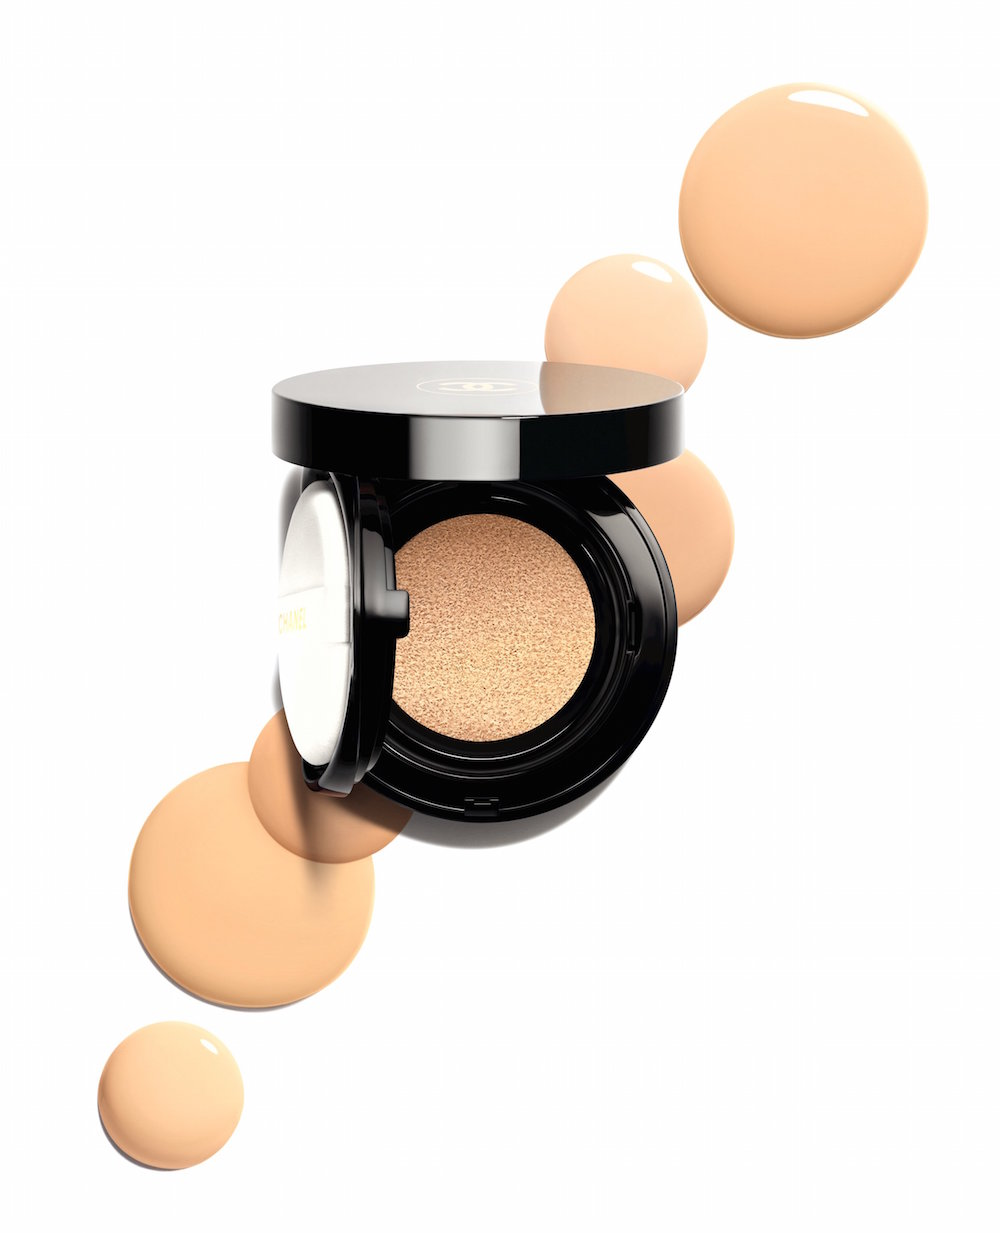 Chanel's Vitalumière Glow cushion foundation